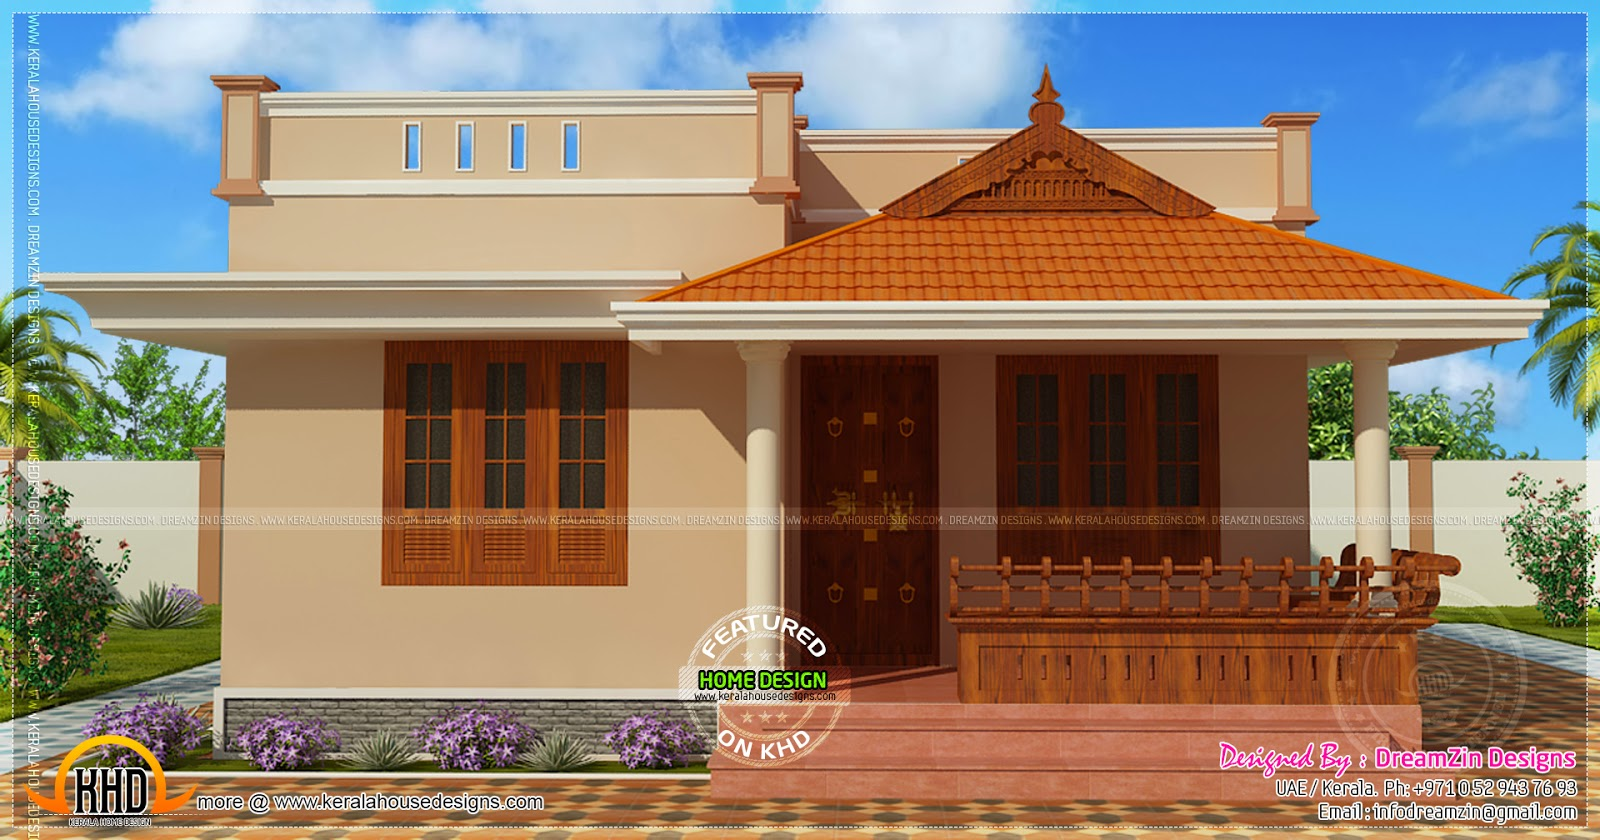 Thoughtskoto for Traditional house designs in tamilnadu